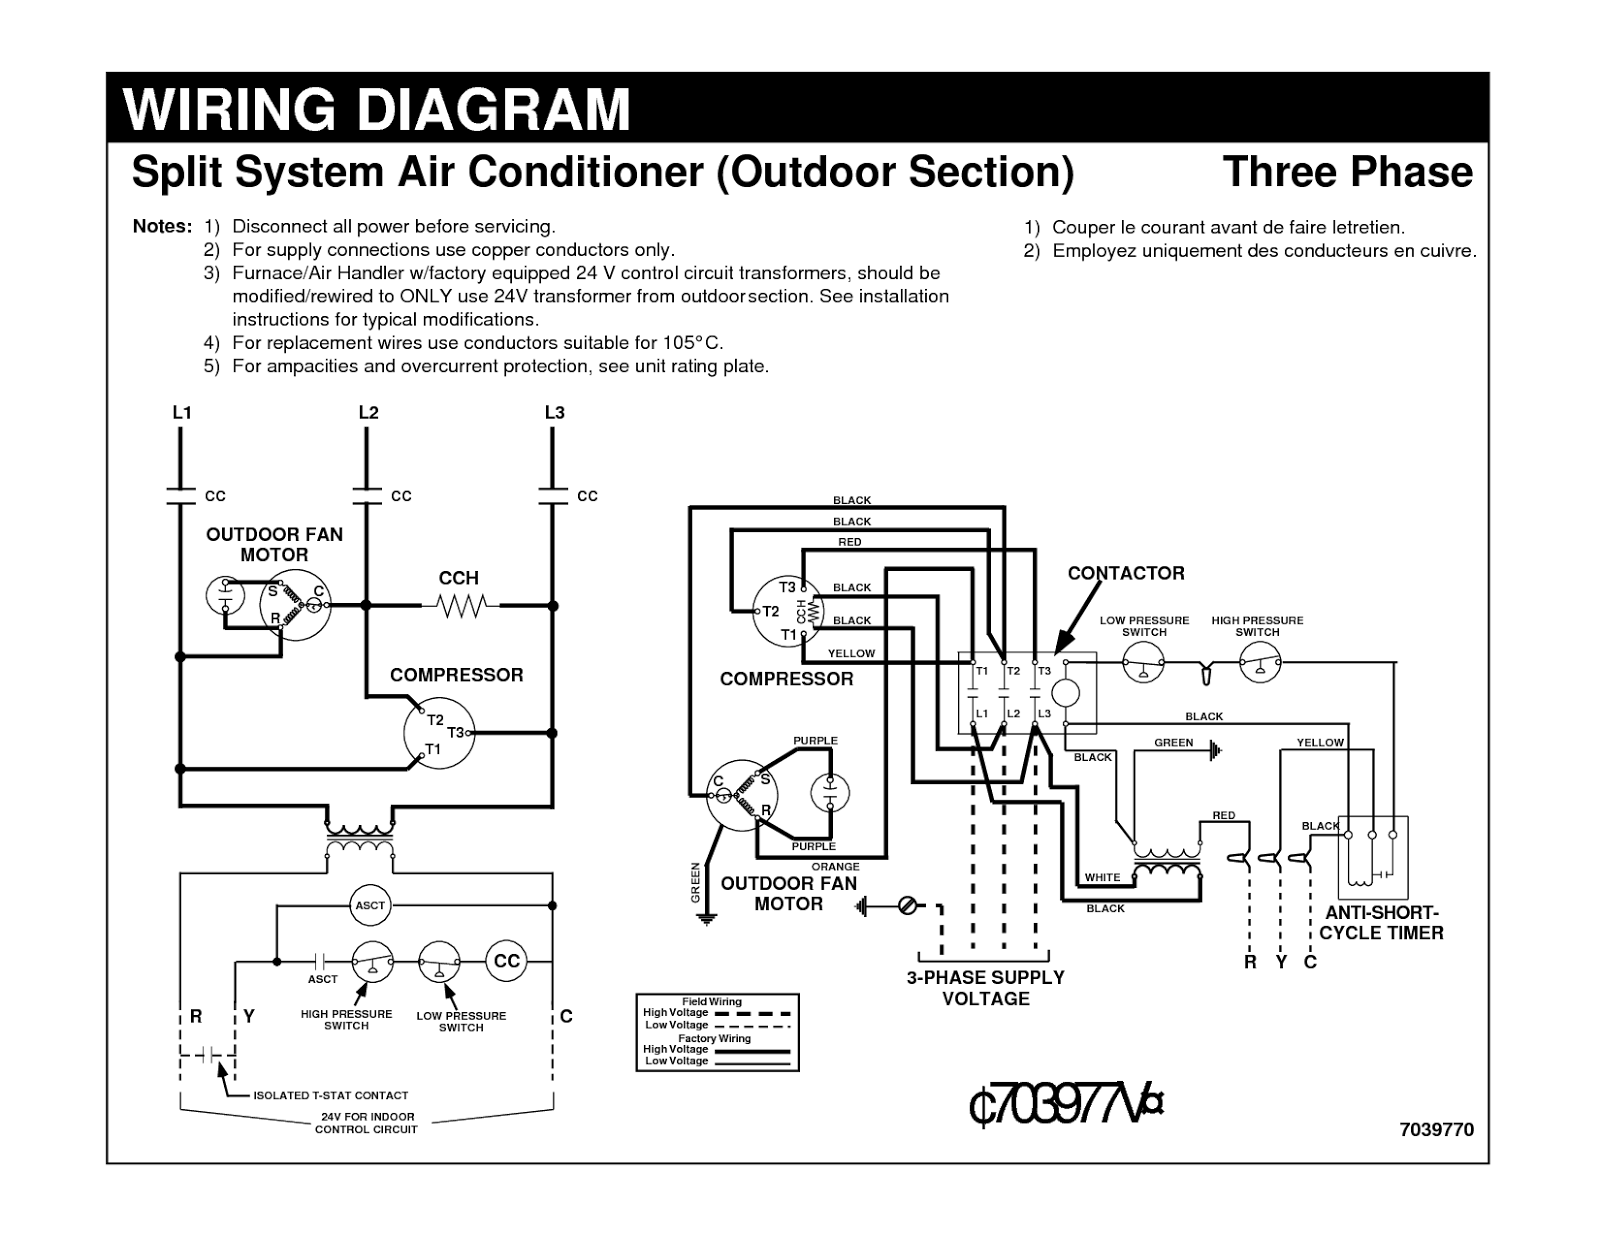 wiring+diagram+in+the+user+manual electrical wiring diagrams for air conditioning systems part one air conditioner wiring diagram picture at aneh.co